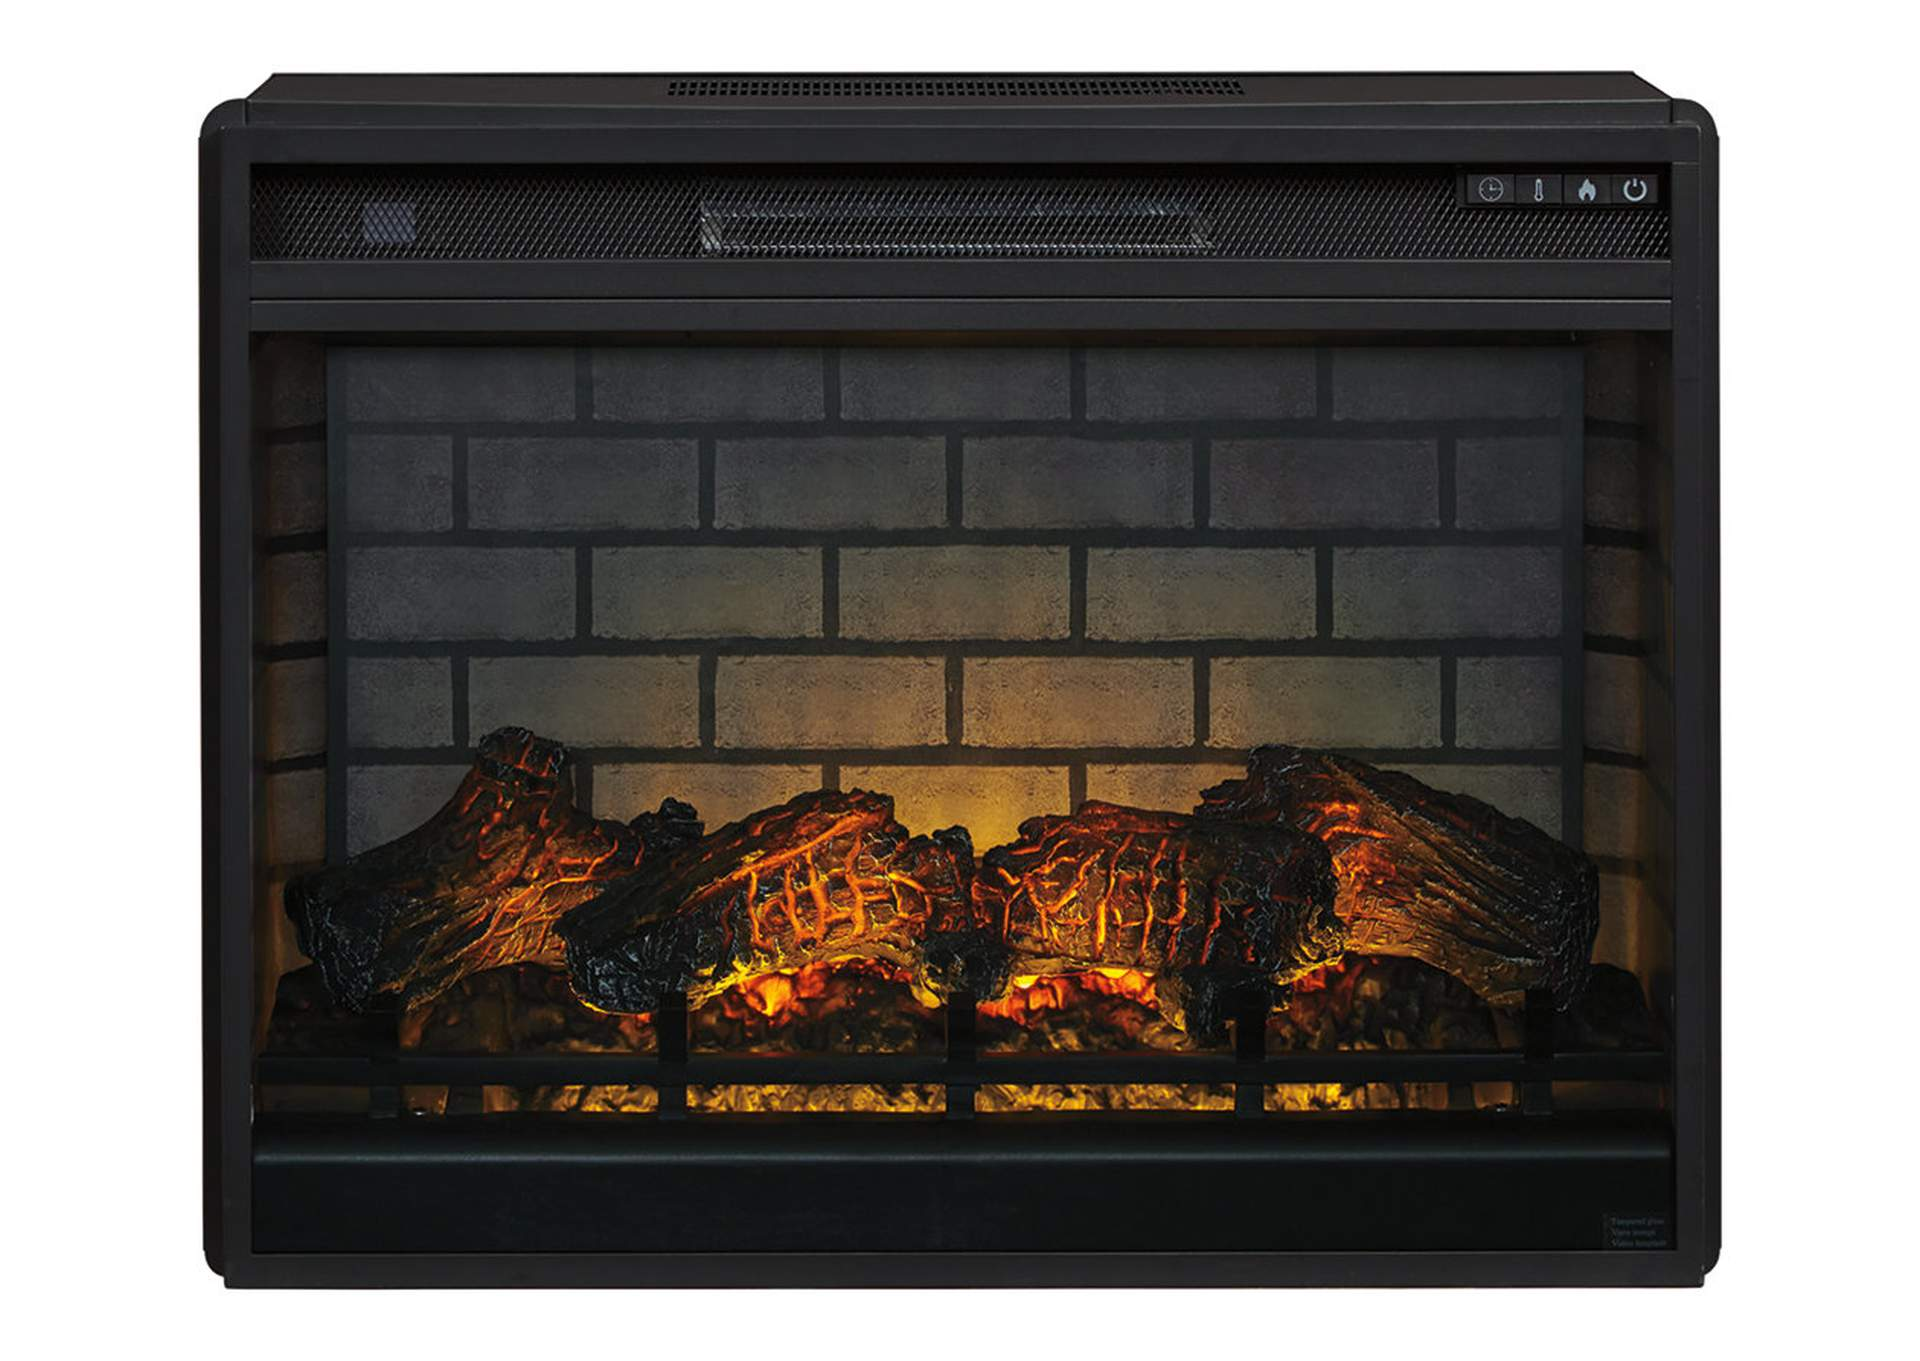 Entertainment Accessories Black Electric Infrared Fireplace Insert,Signature Design By Ashley